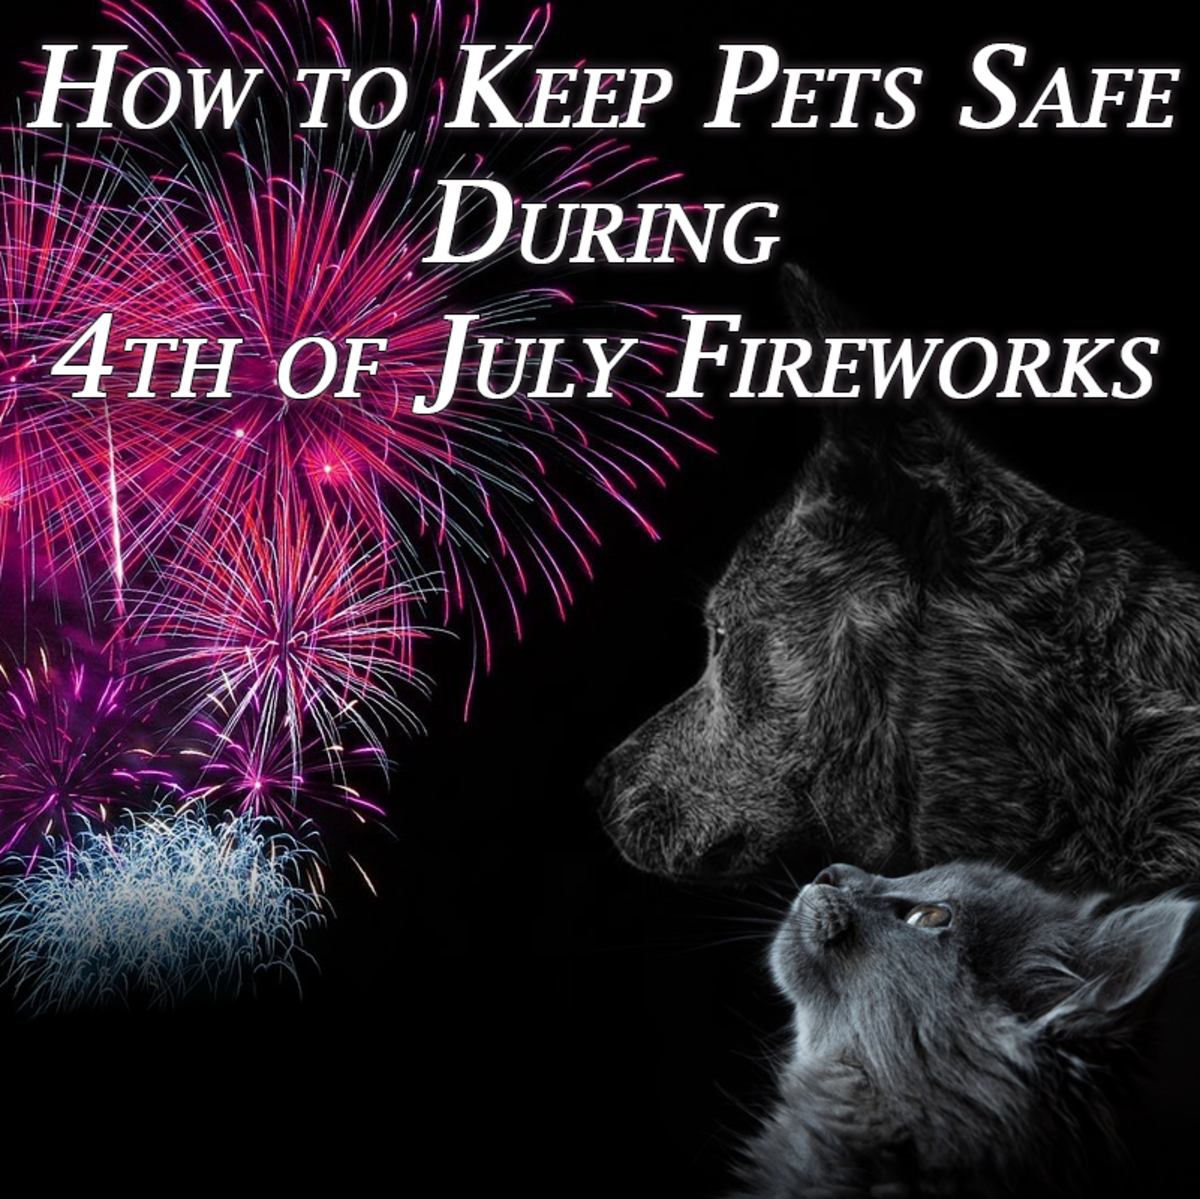 It is important to keep cats and dogs safe on the 4th of July.